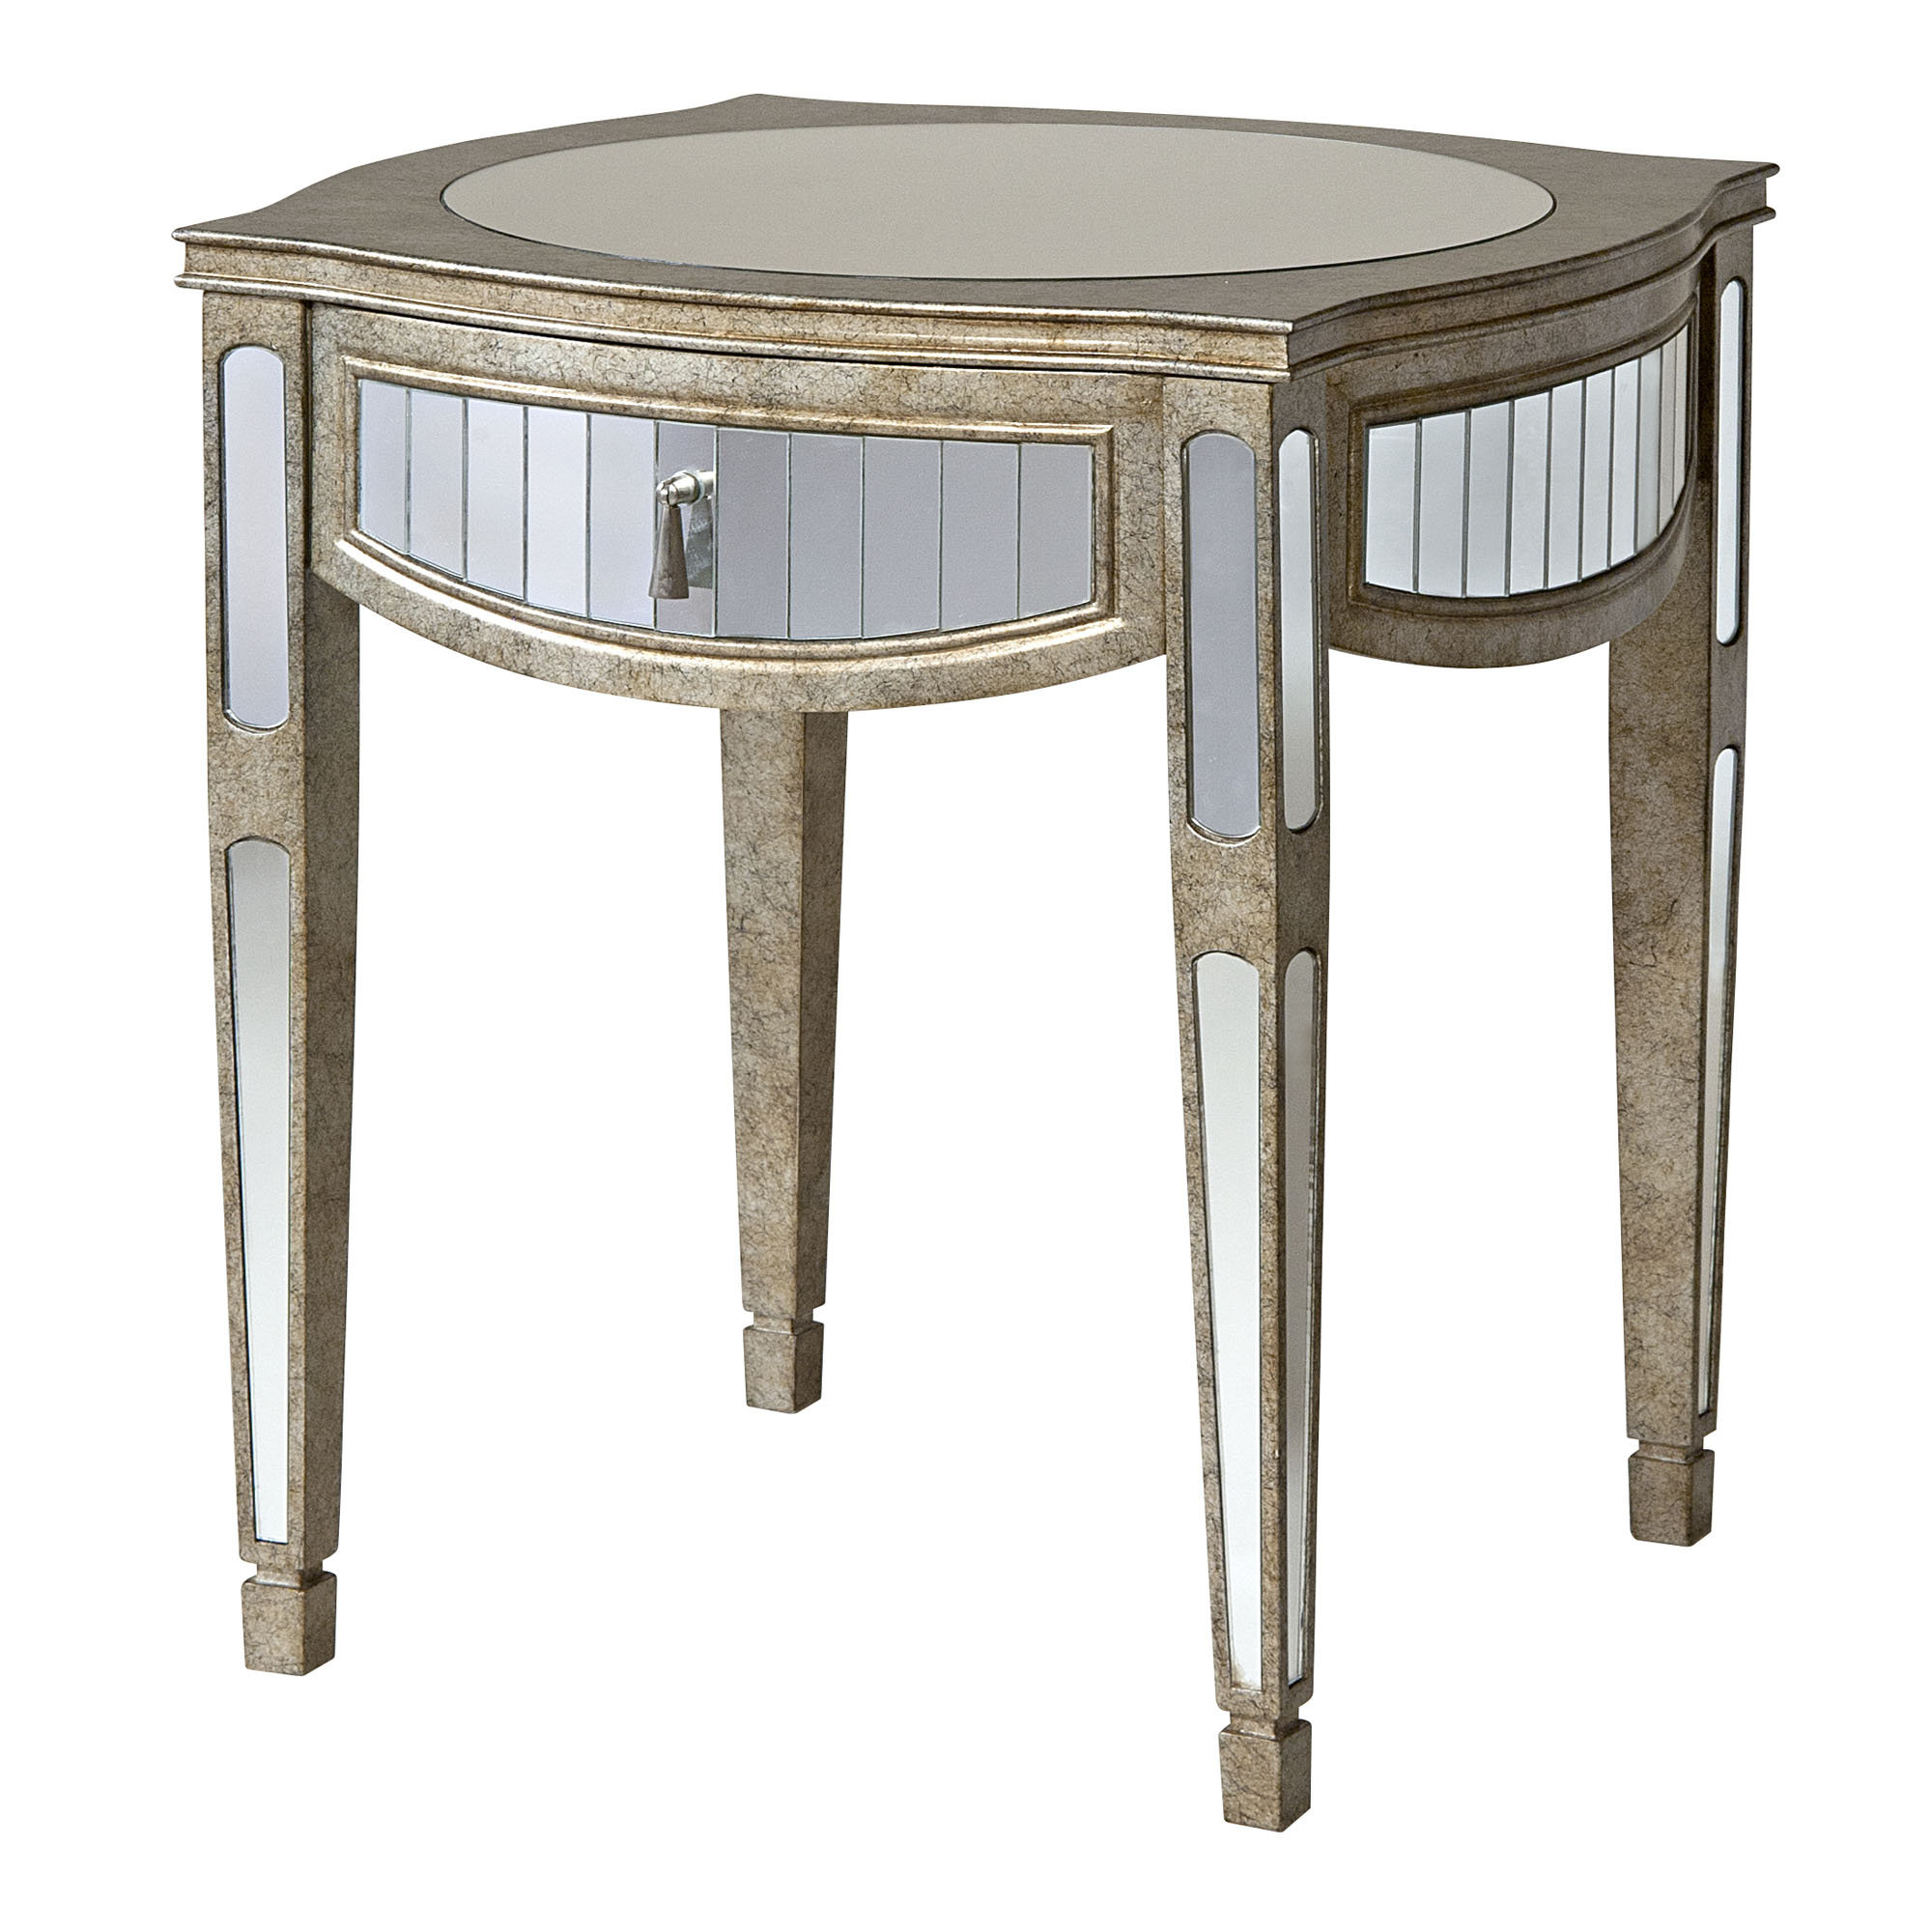 mirrored accent table with drawers drawer furniture house decorations within sizing threshold ashley end usb black and grey tablecloth lack bedside modern console outdoor dining